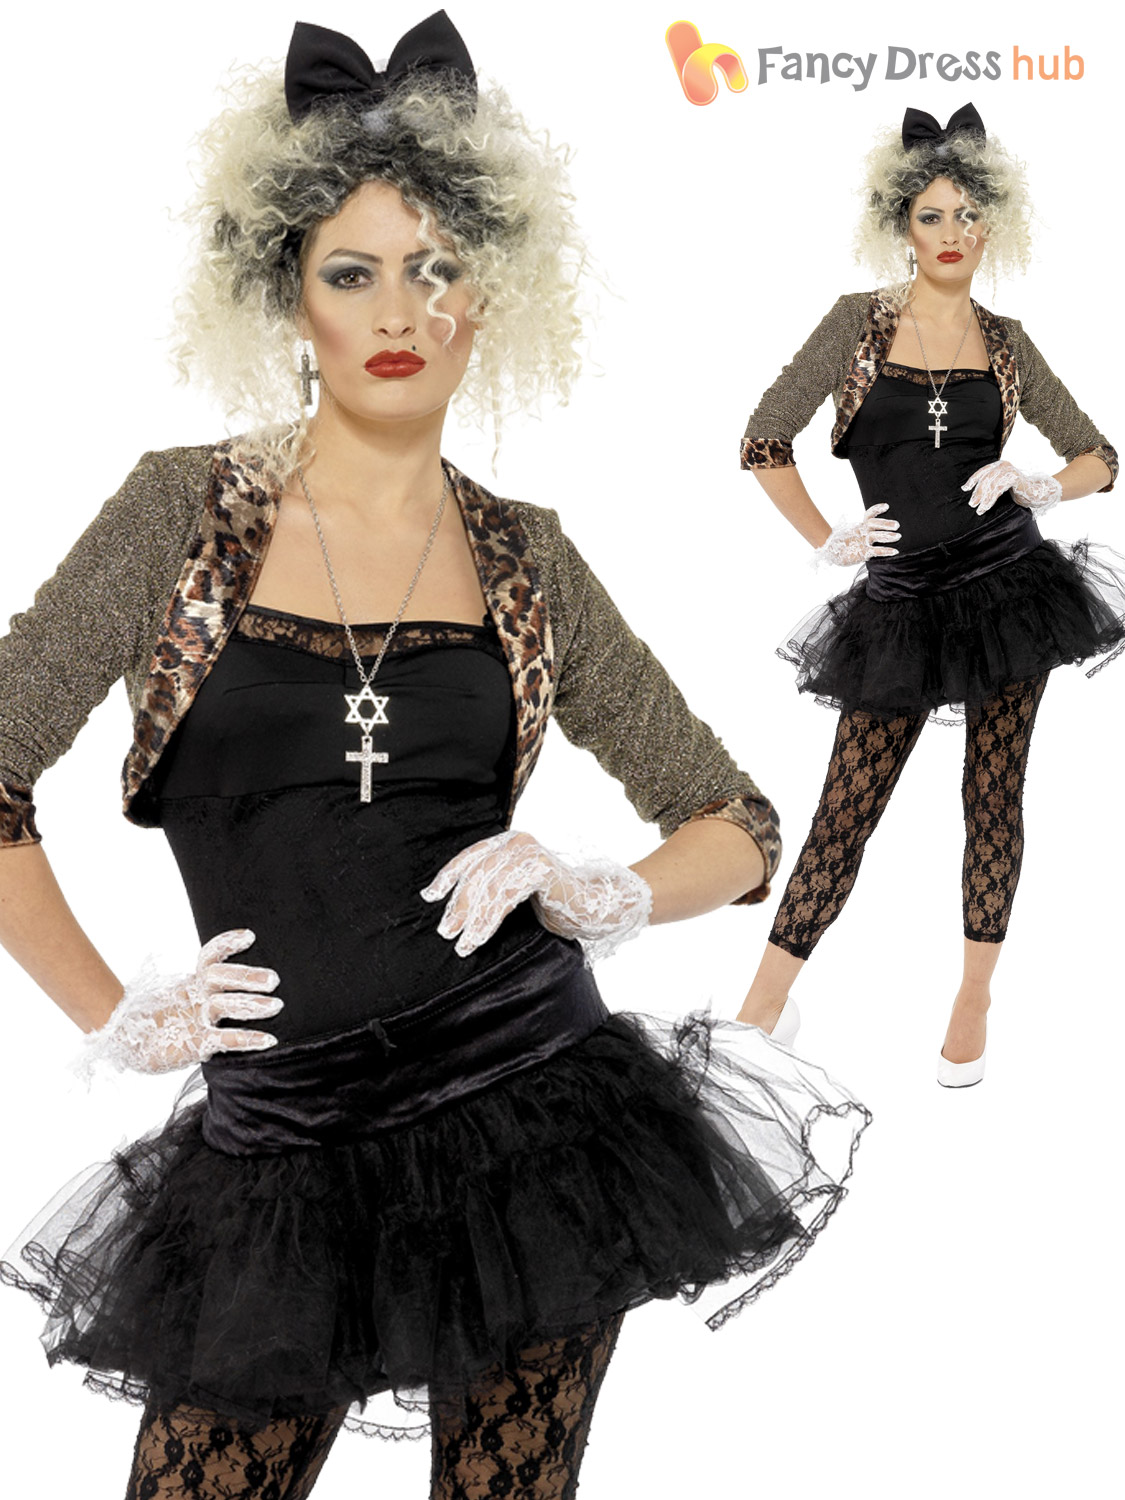 Ladies 80s Fancy Dress Pop Star Costume 1980s Wild Child